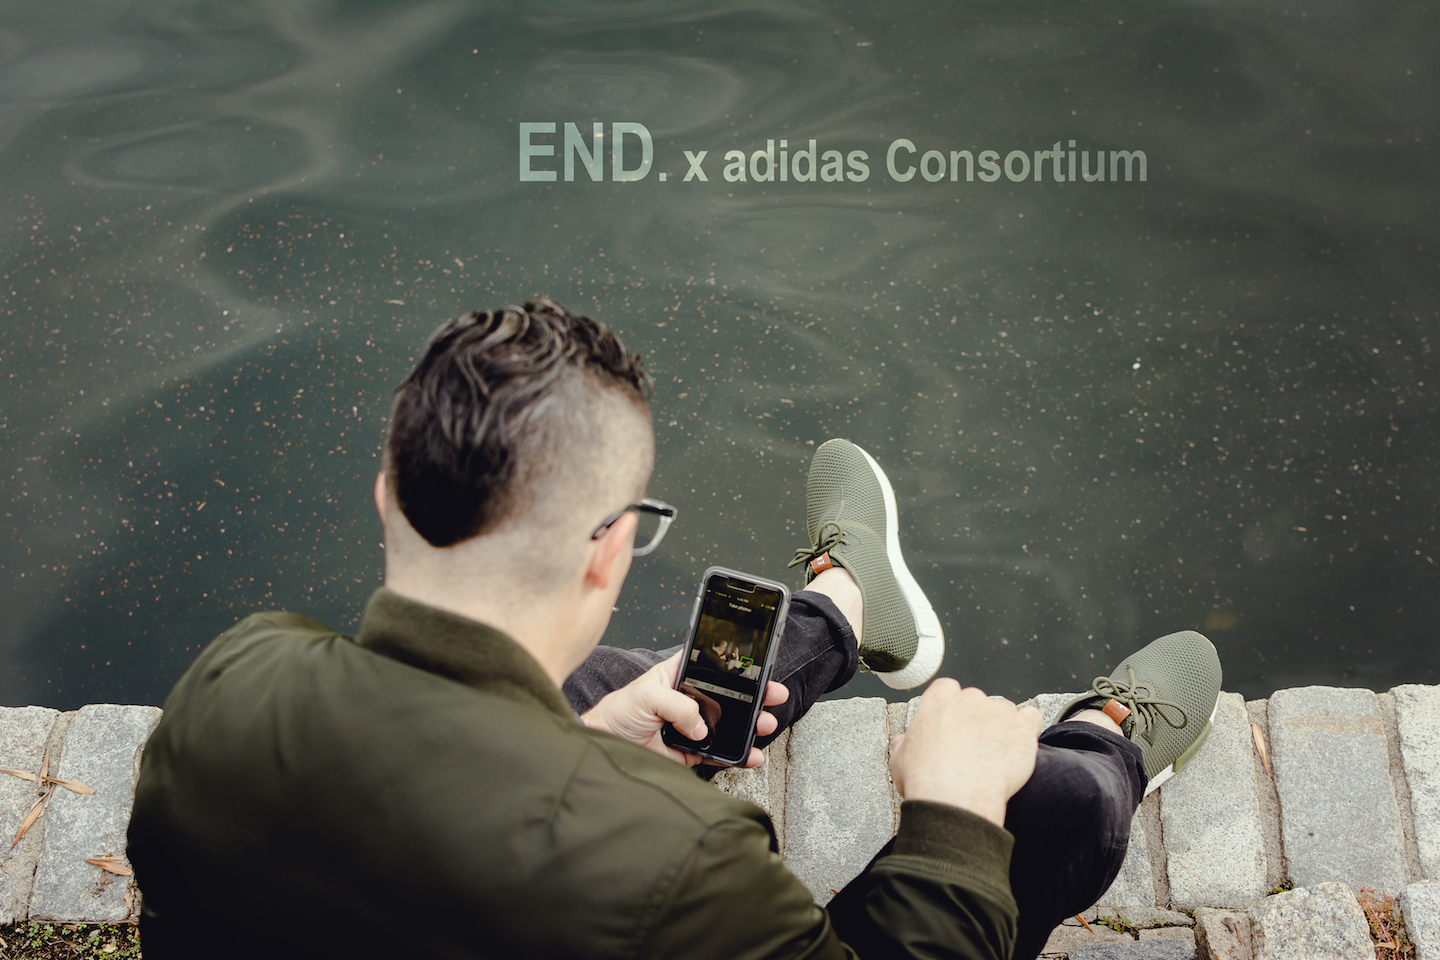 nmd end